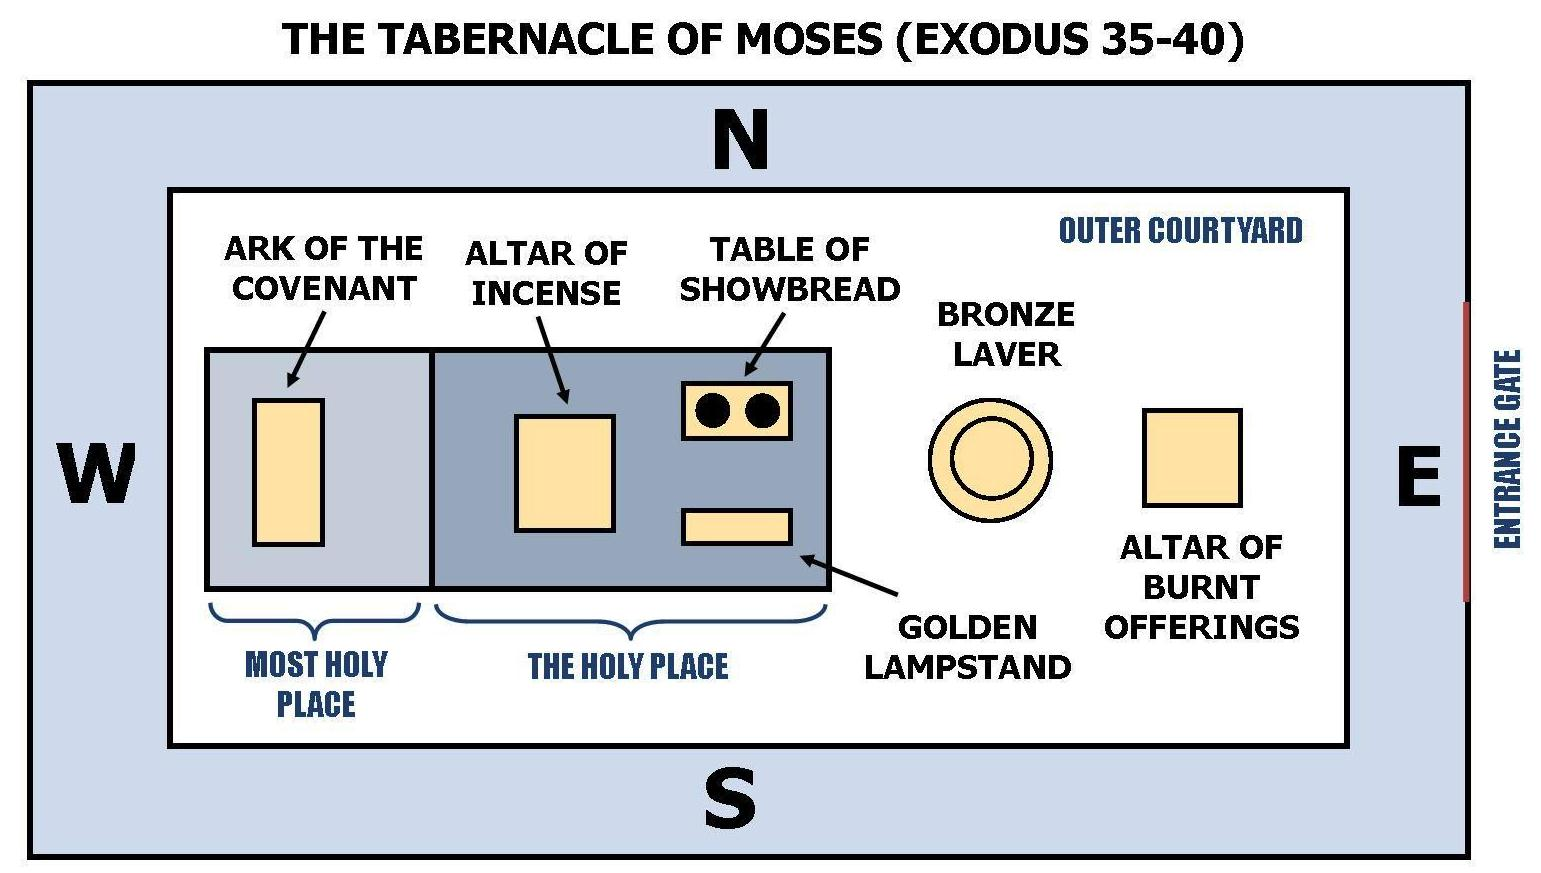 E26 1 The Operation Of The Tabernacle Teaches Us To